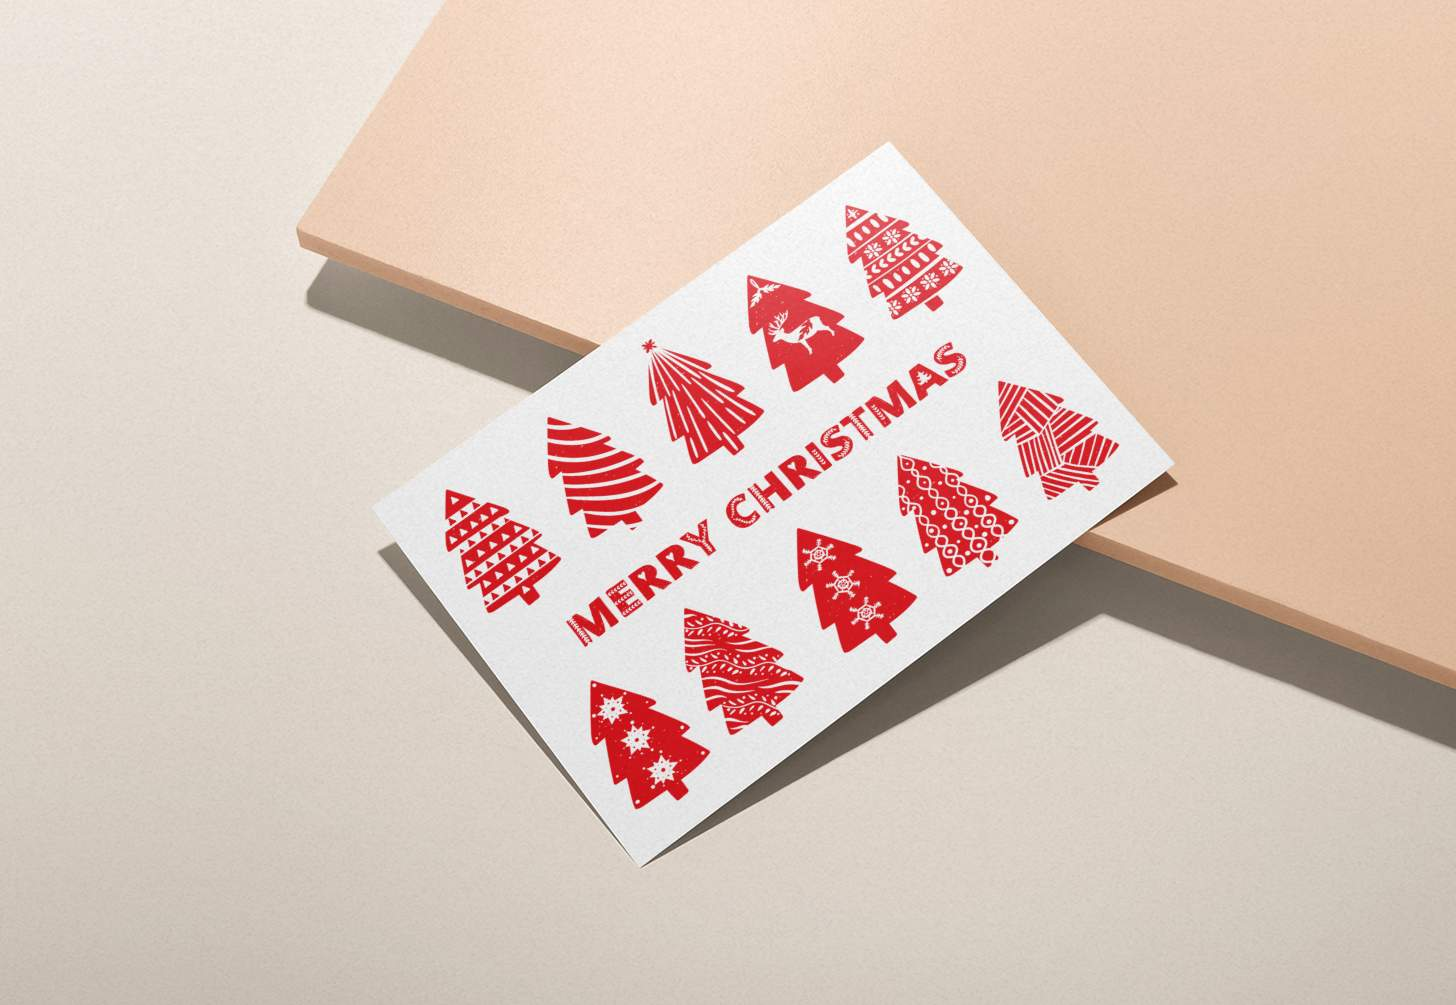 Hands holding red and white Merry Christmas with Christmas trees design on pink background